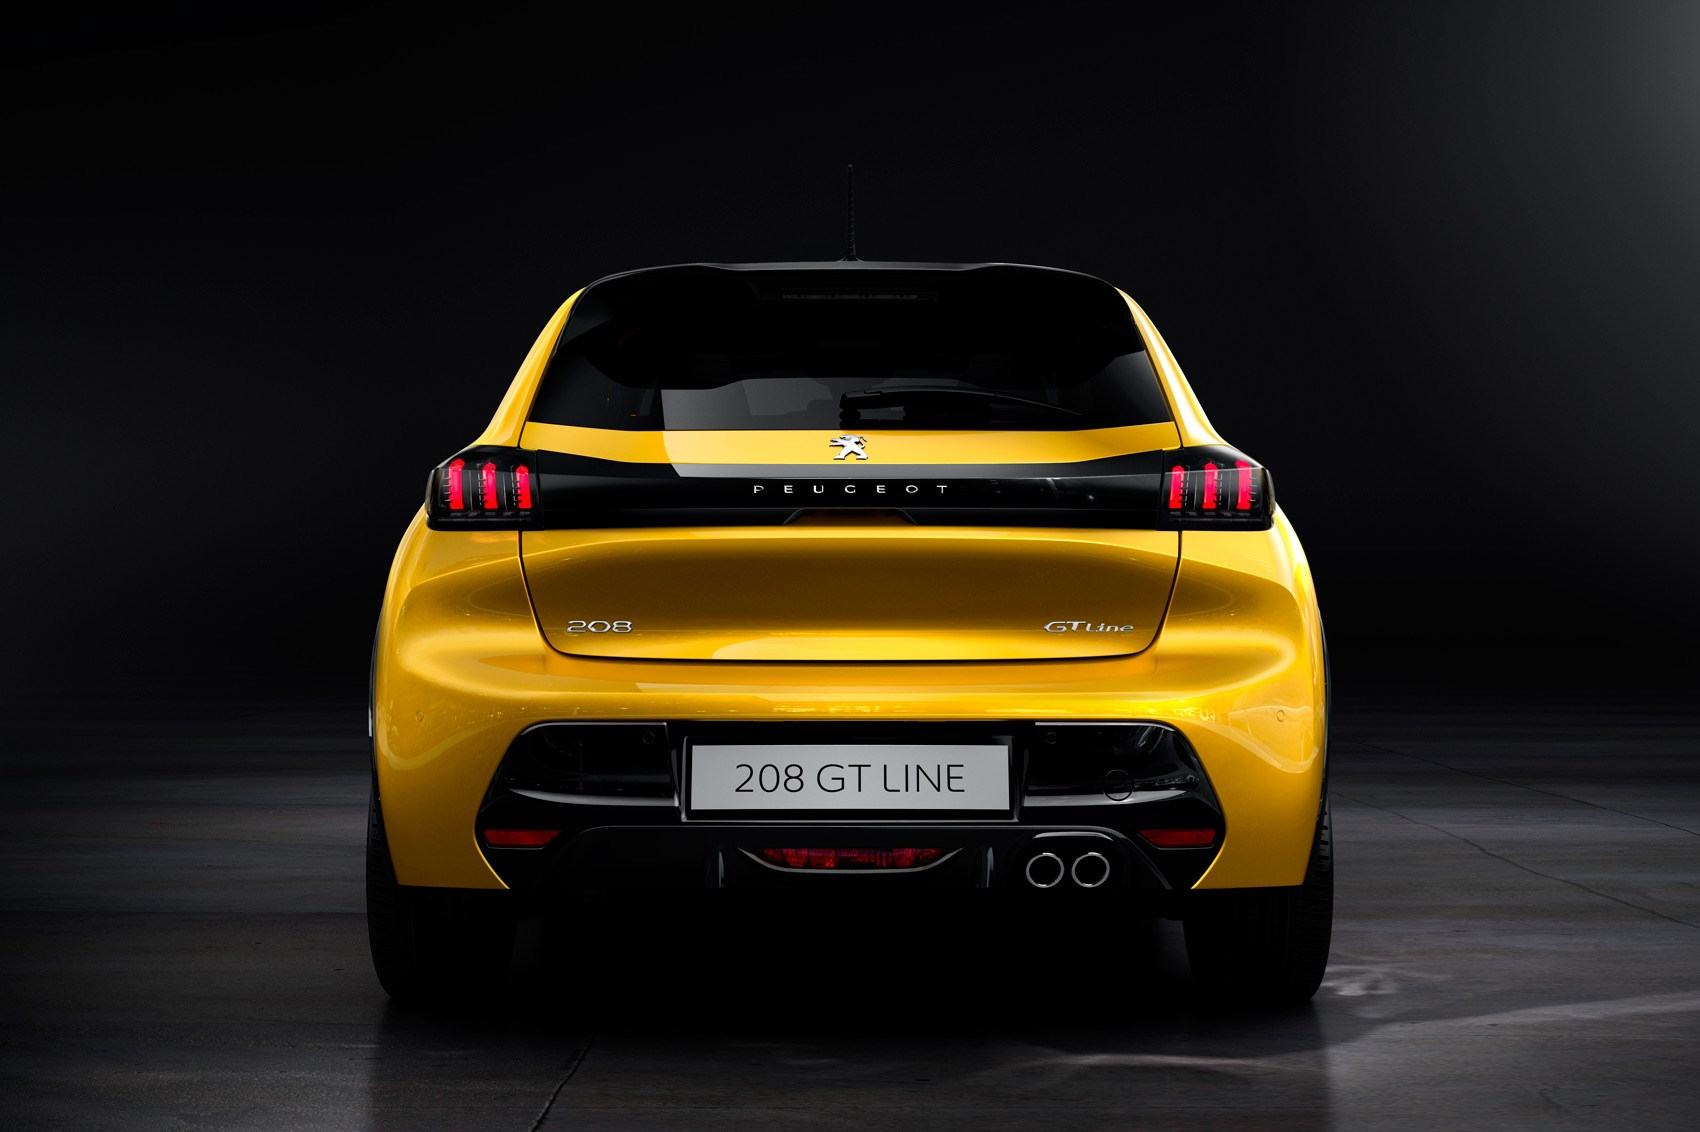 New 2019 Peugeot 208 And E-208: The Full Story